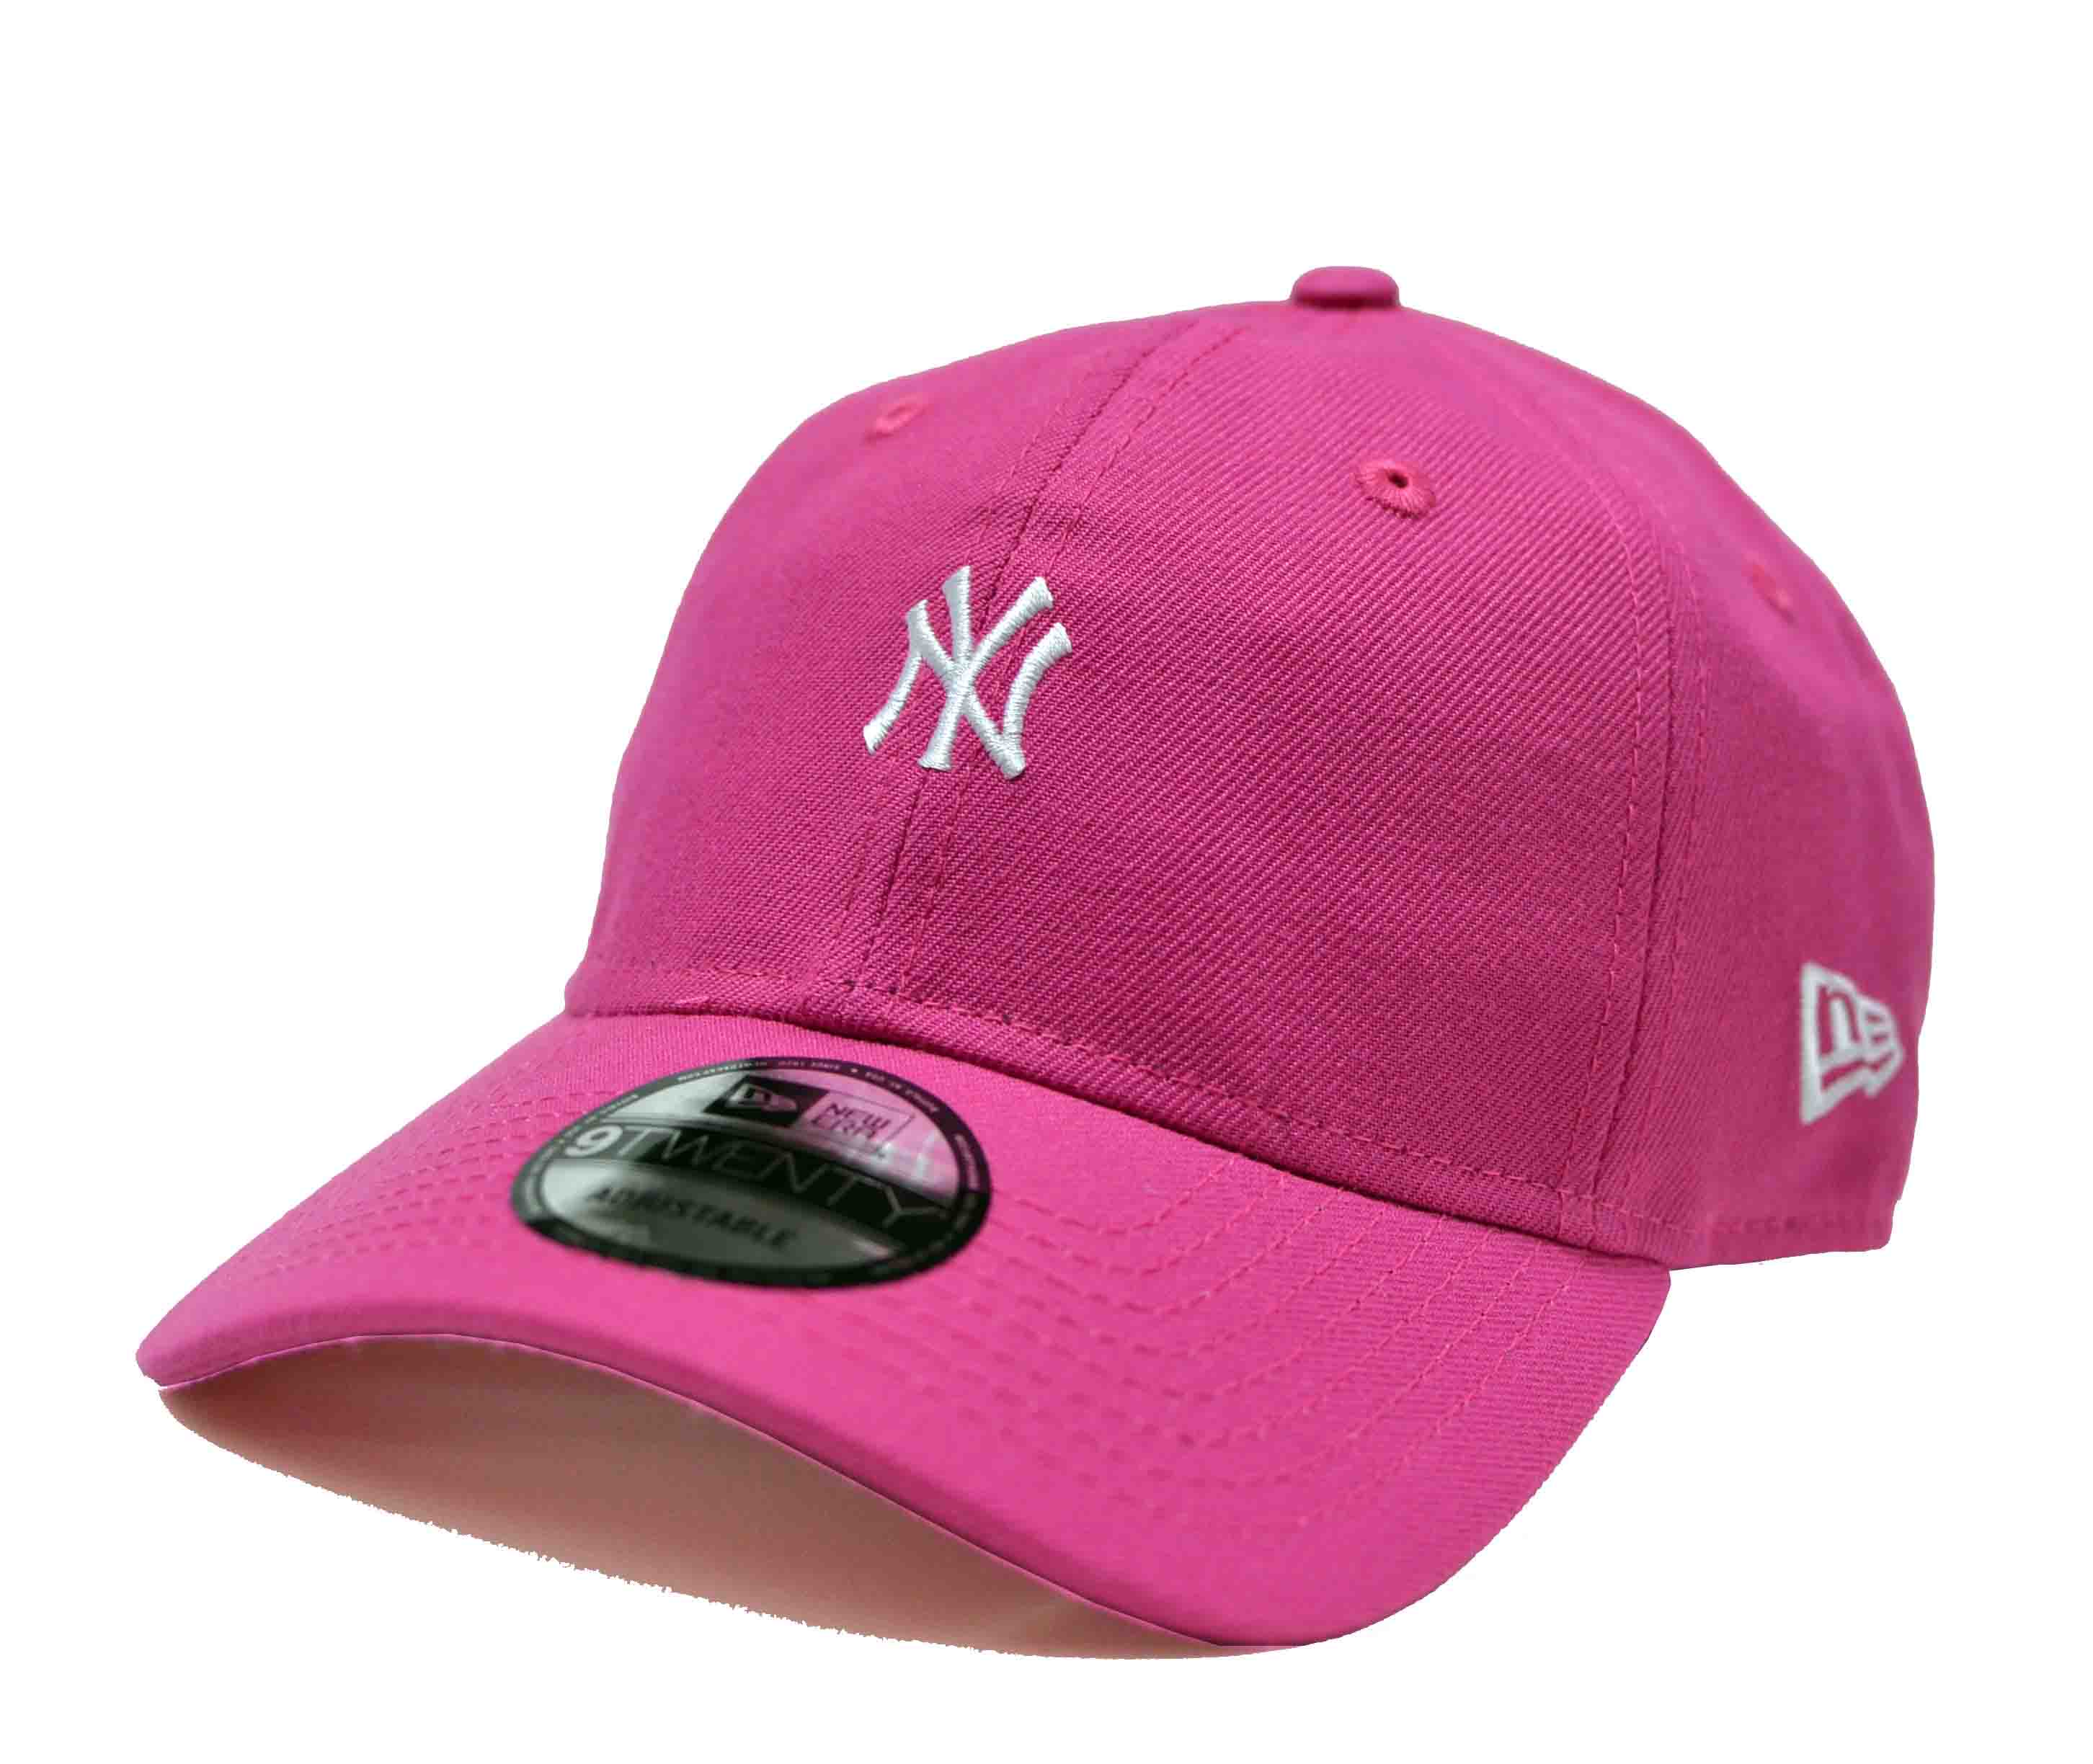 Boné New Era Aba Curva Mini Logo New York Rosa Pink - Strapback